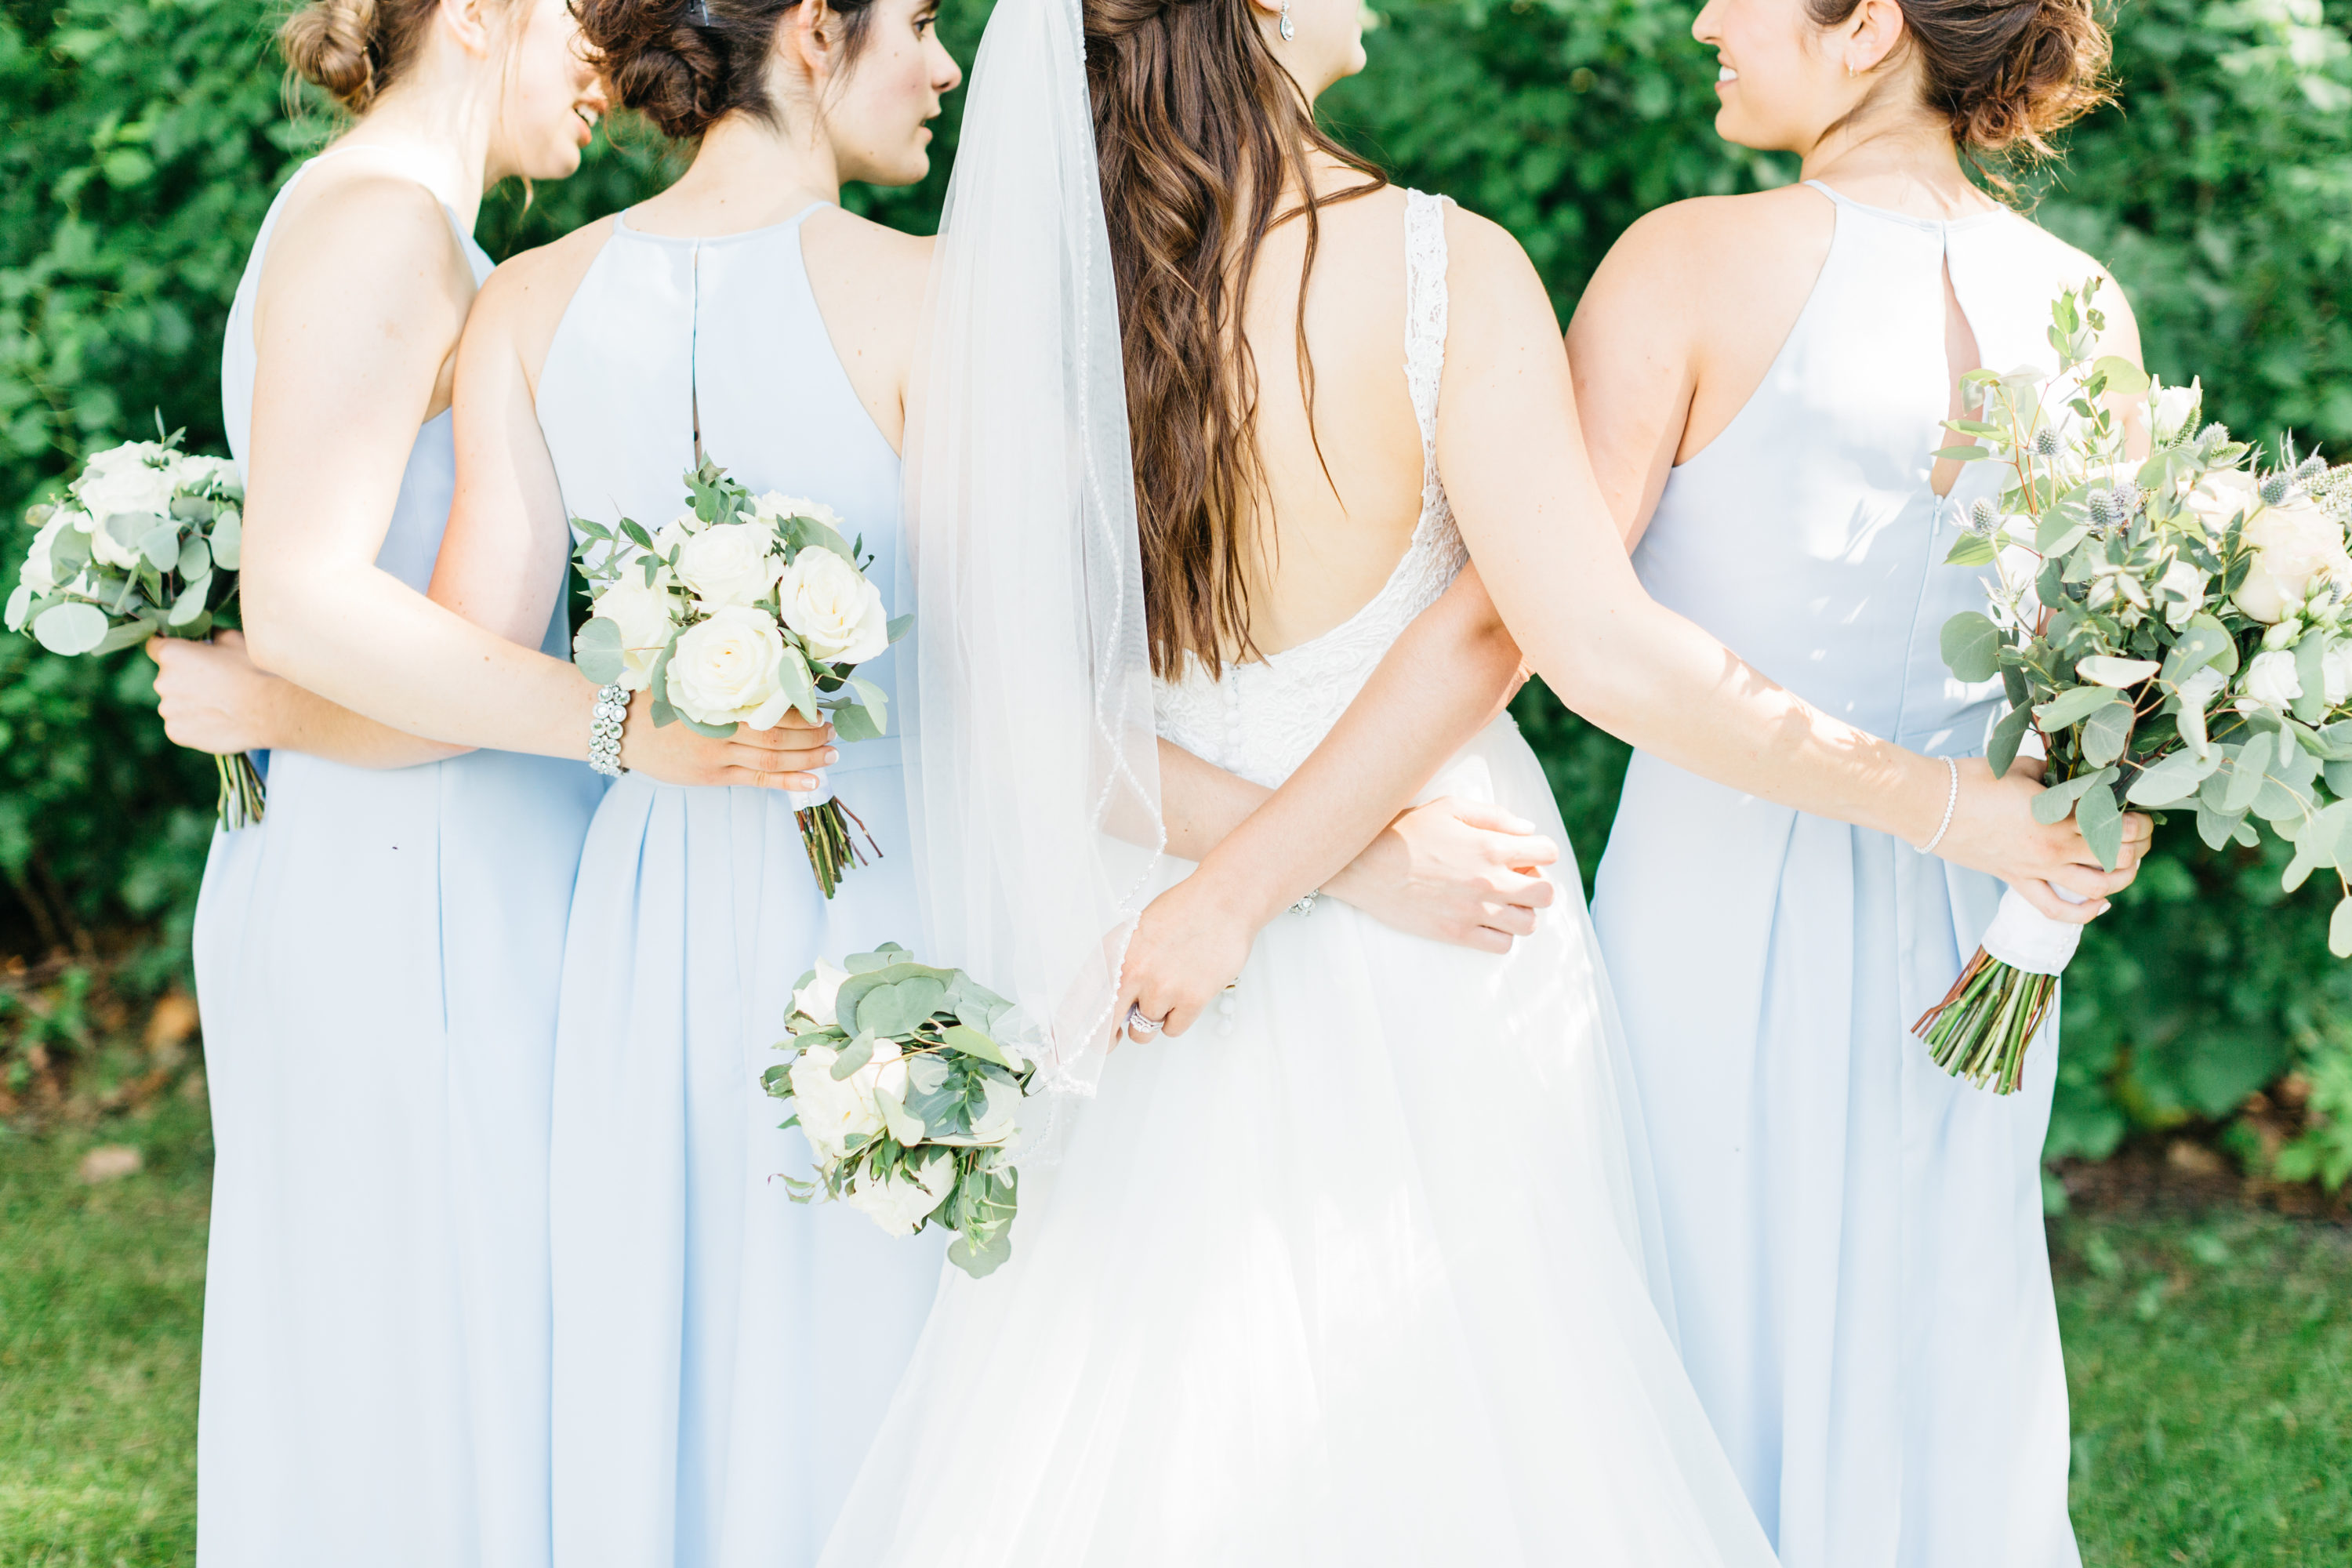 Detail shots of bride with bridesmaids